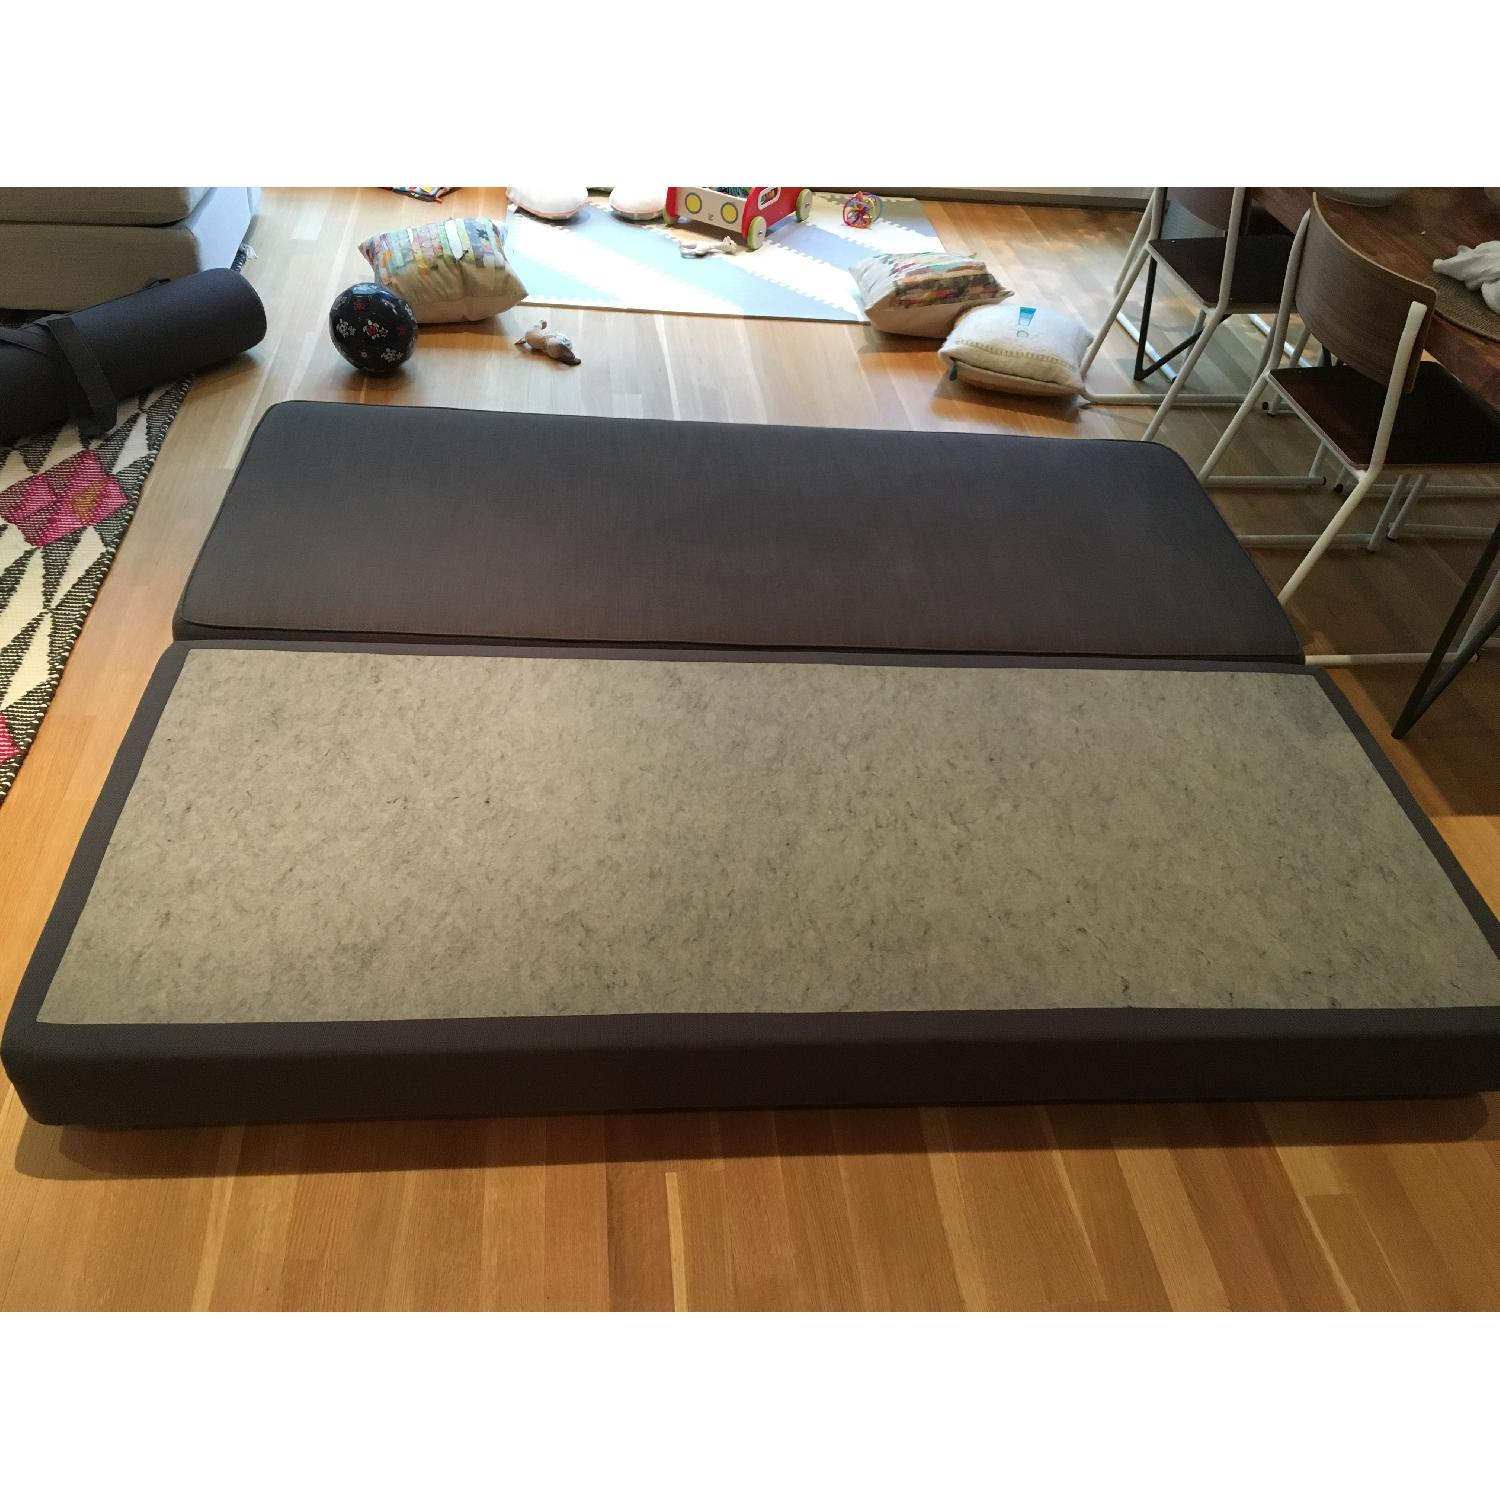 CB2 Lubi Sleeper Daybed - image-13